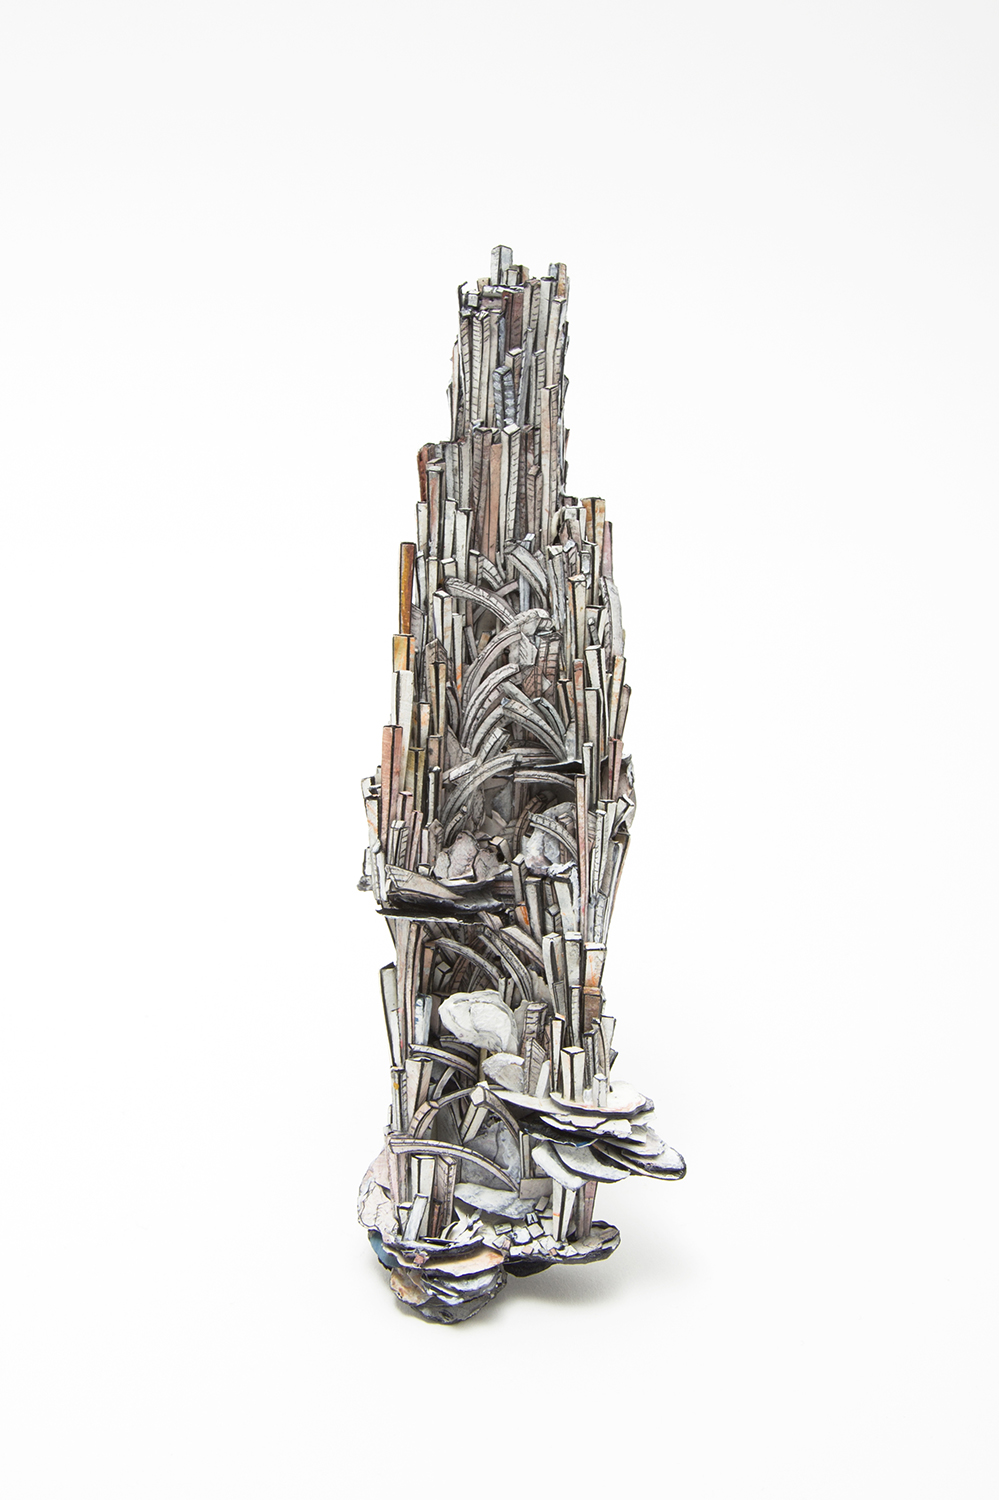 Untitled | Brooch | 2020 | Paper, paint, silver, wood, graphite, stainless steel |185X55X28mm